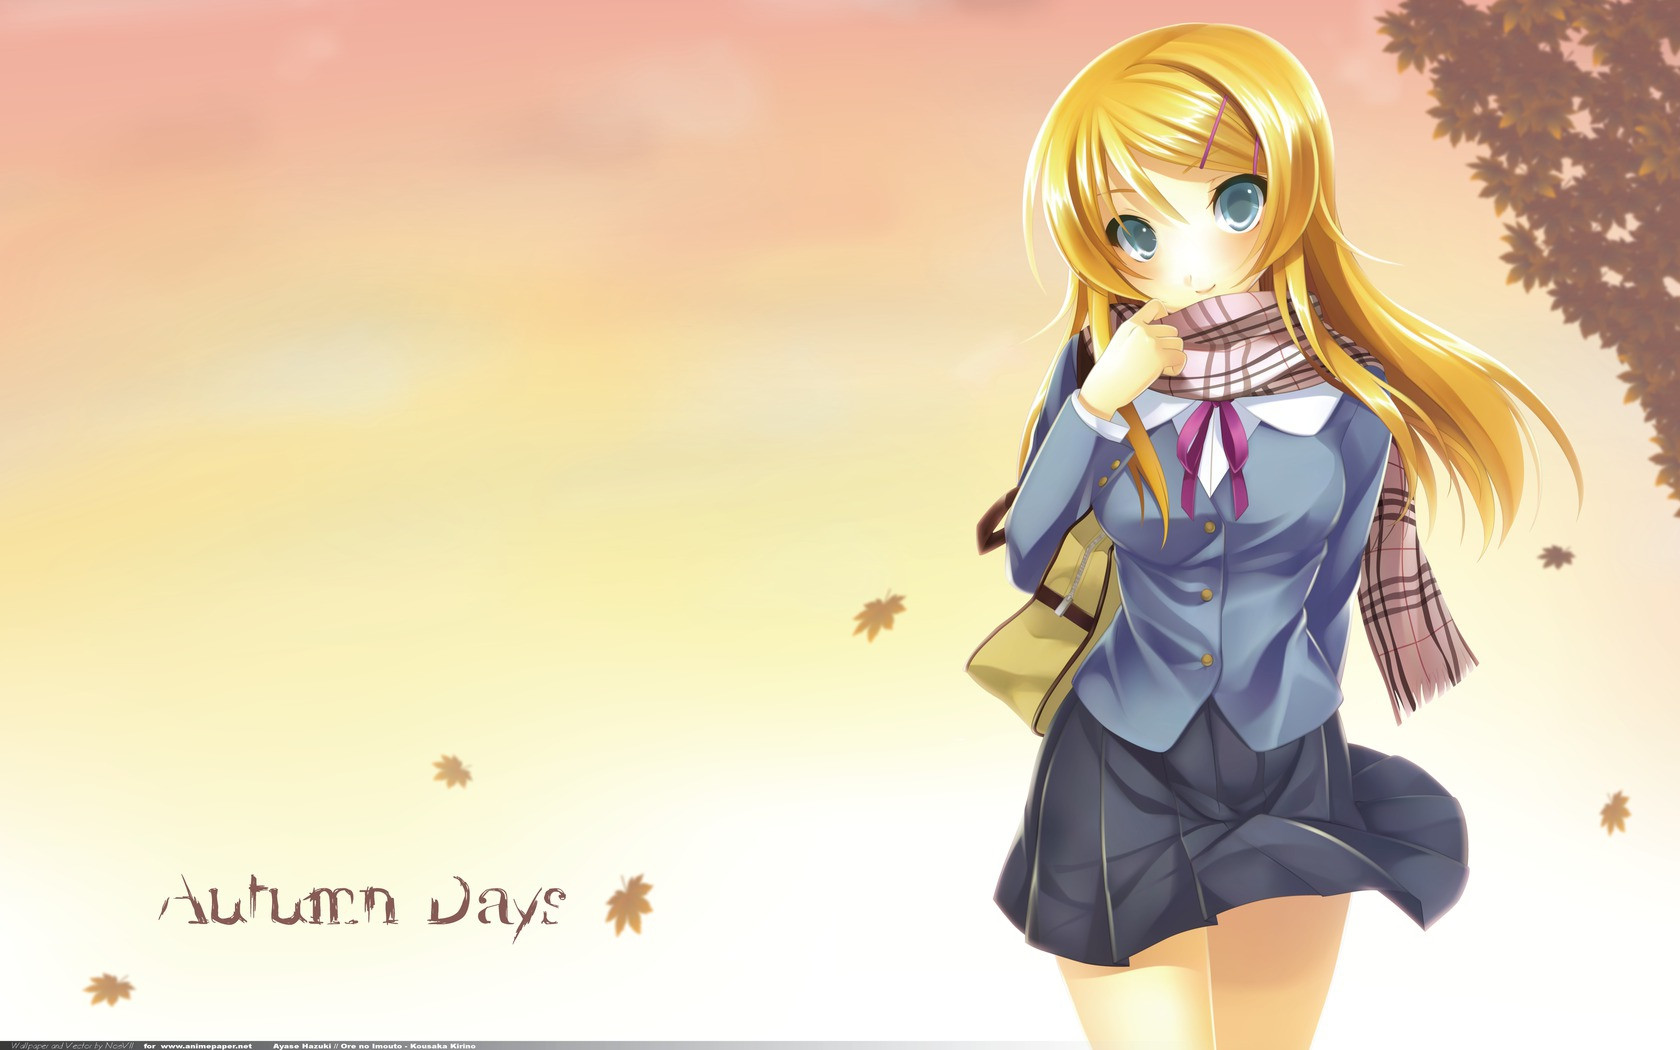 Wallpaper Cute Little Girl Anime Kawaii Wallpapers Pixelstalk Net